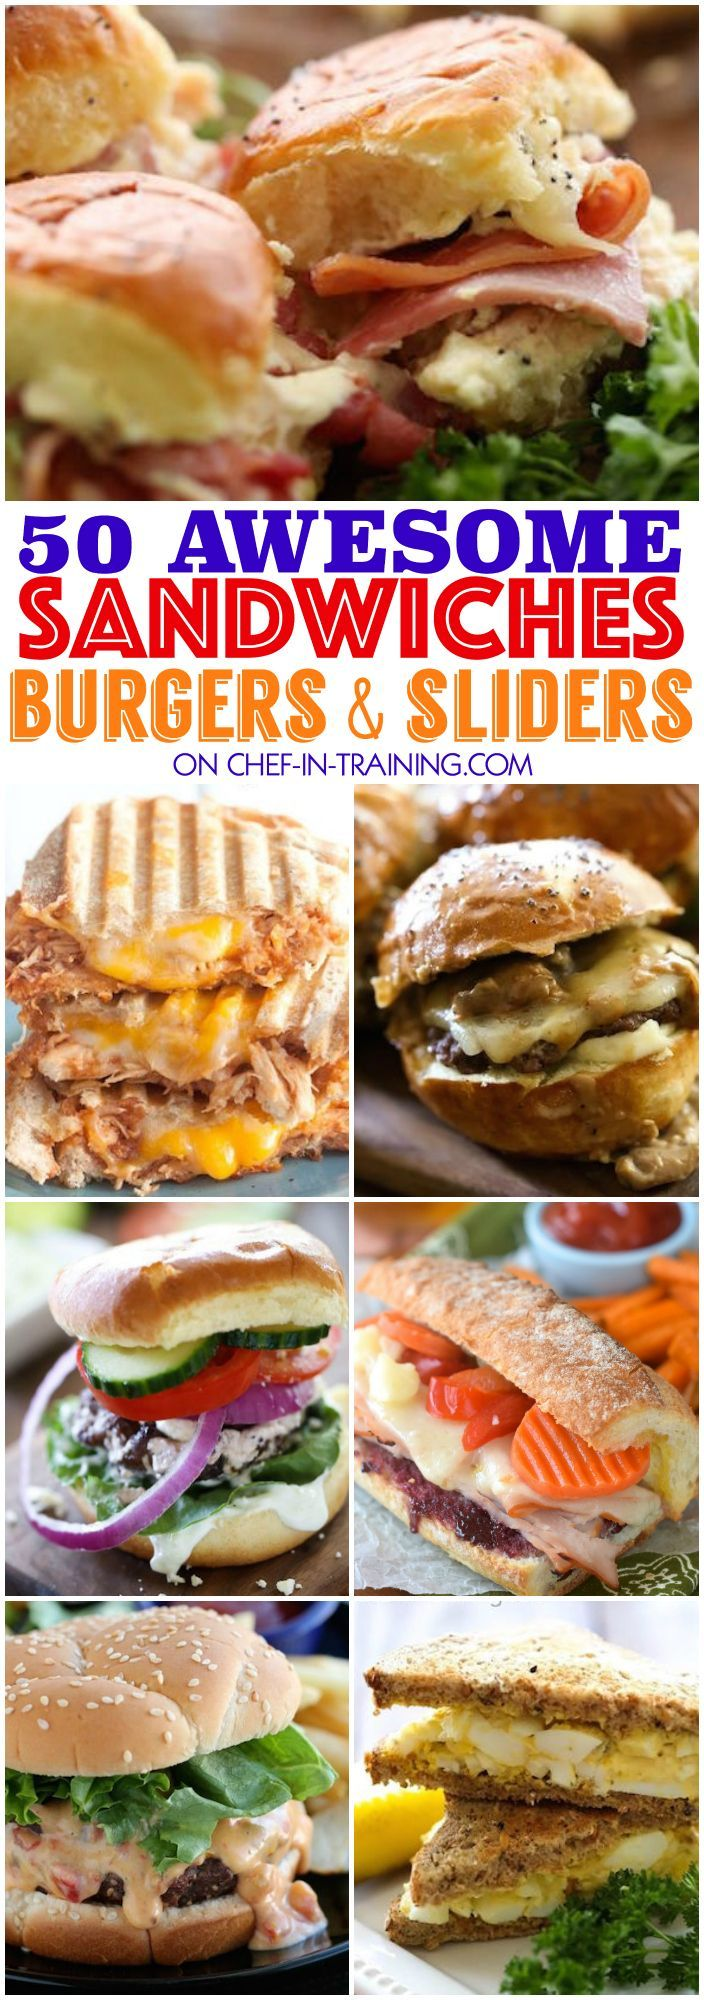 50 Awesome Sandwiches, Burgers and Sliders.... this list is the perfect GO TO for spring and summer! So many yummy unique and delicious options to choose from!